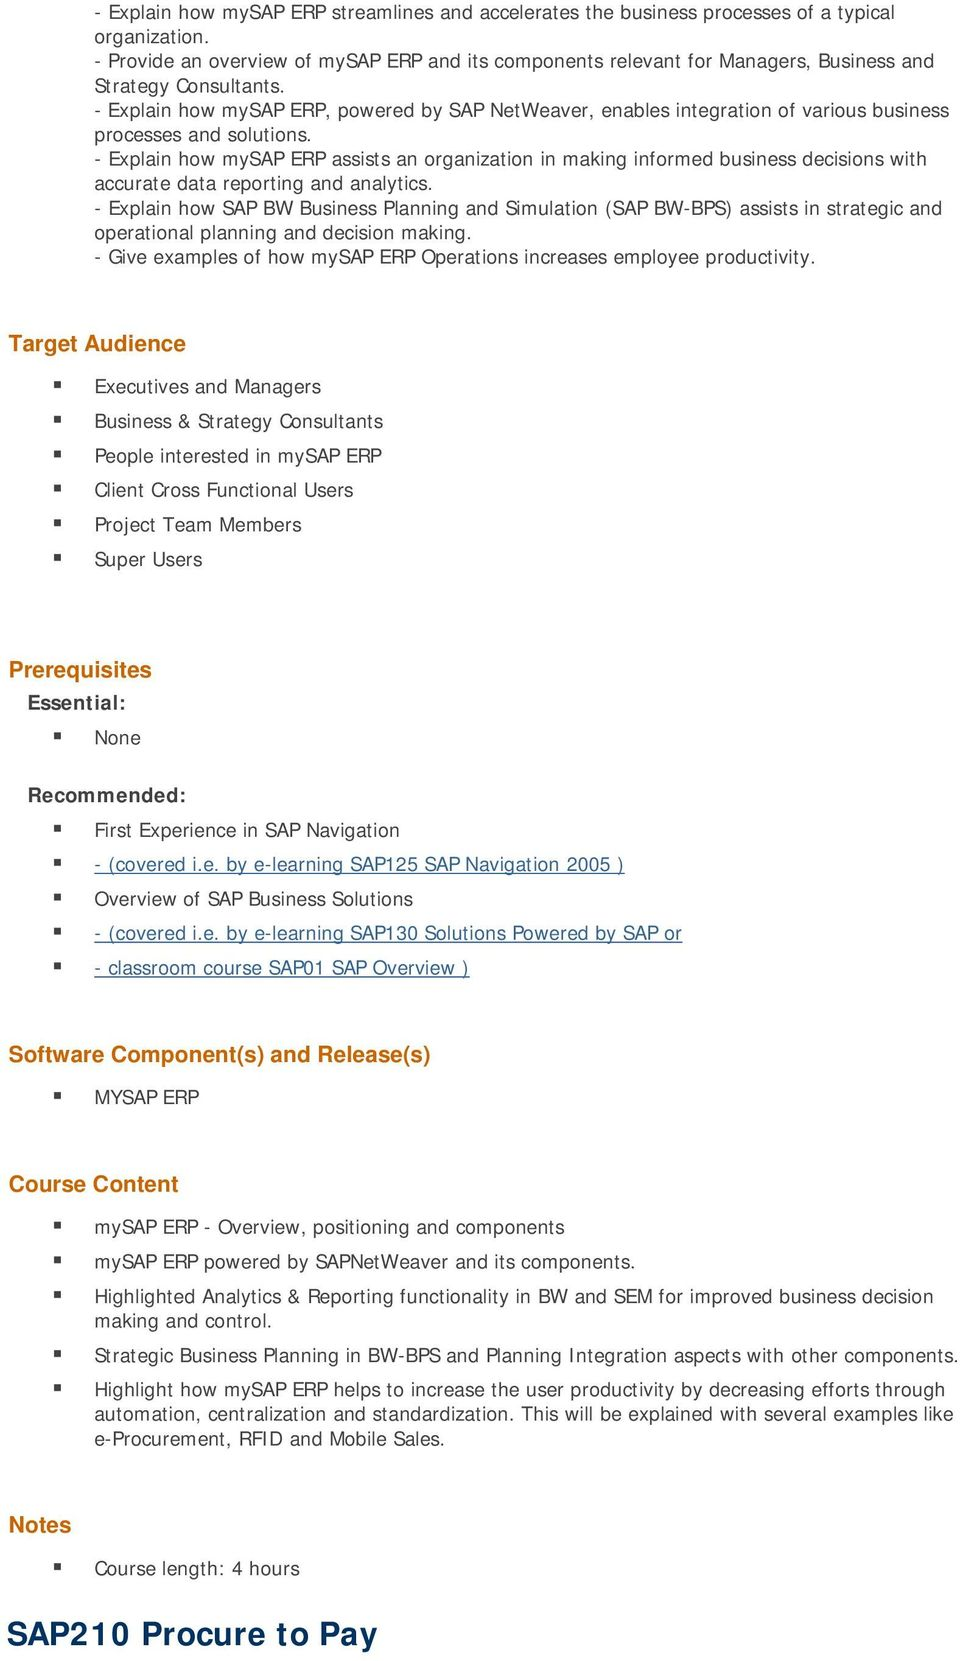 - Explain how mysap ERP, powered by SAP NetWeaver, enables integration of various business processes and solutions.